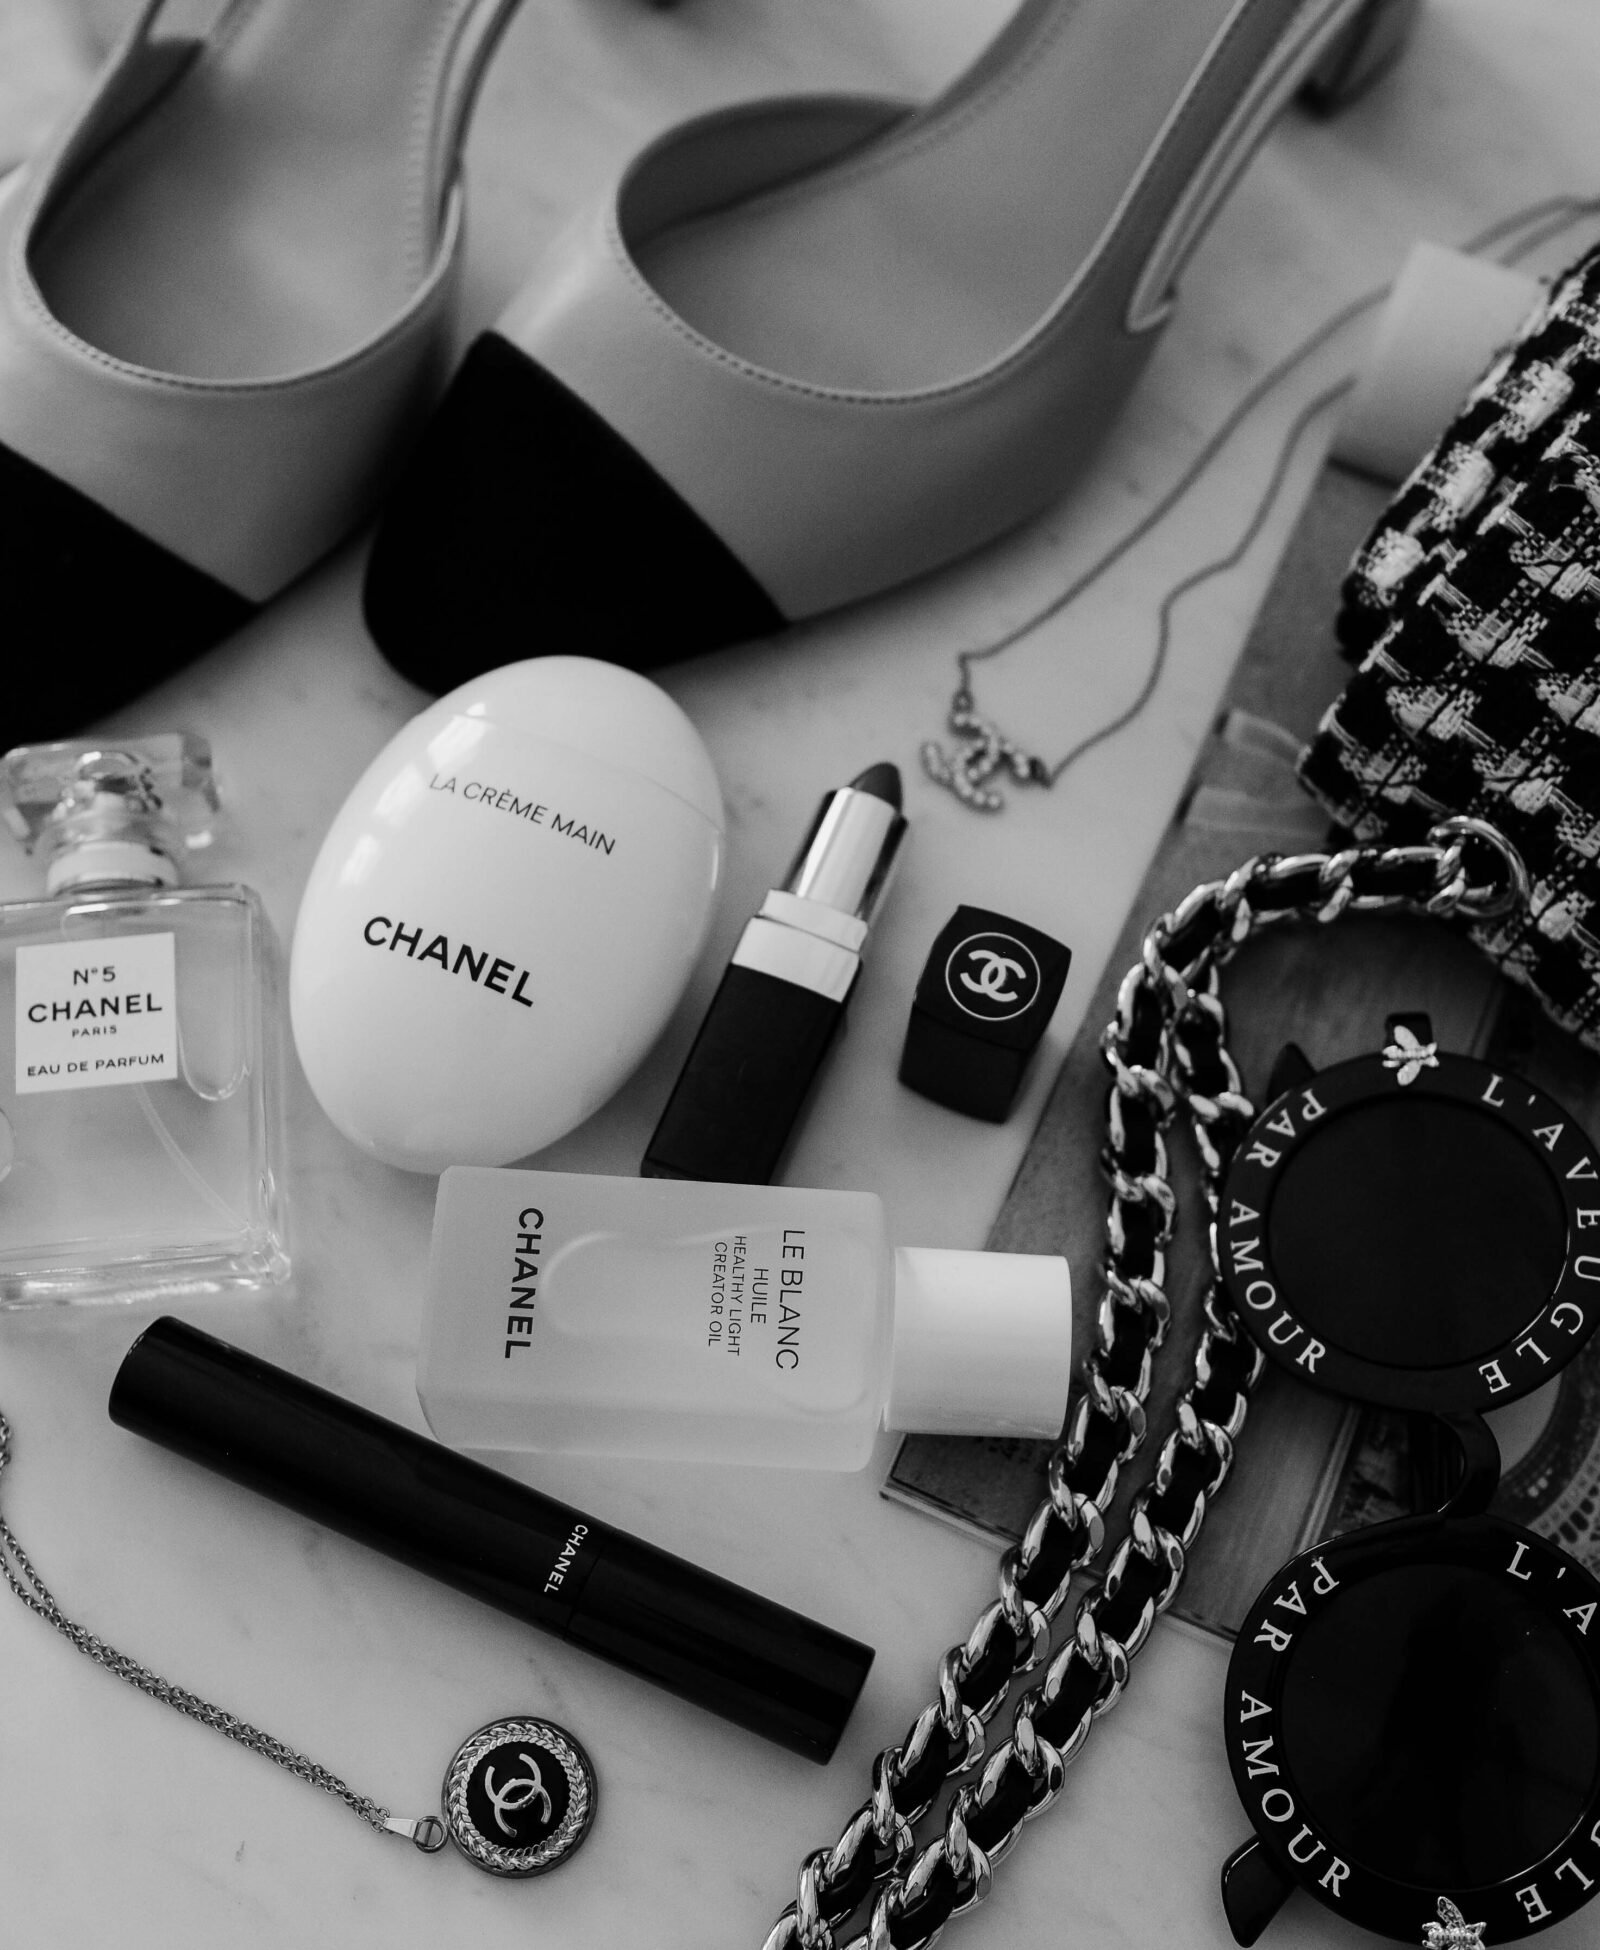 chanel skincare reviews beauty product flatlay